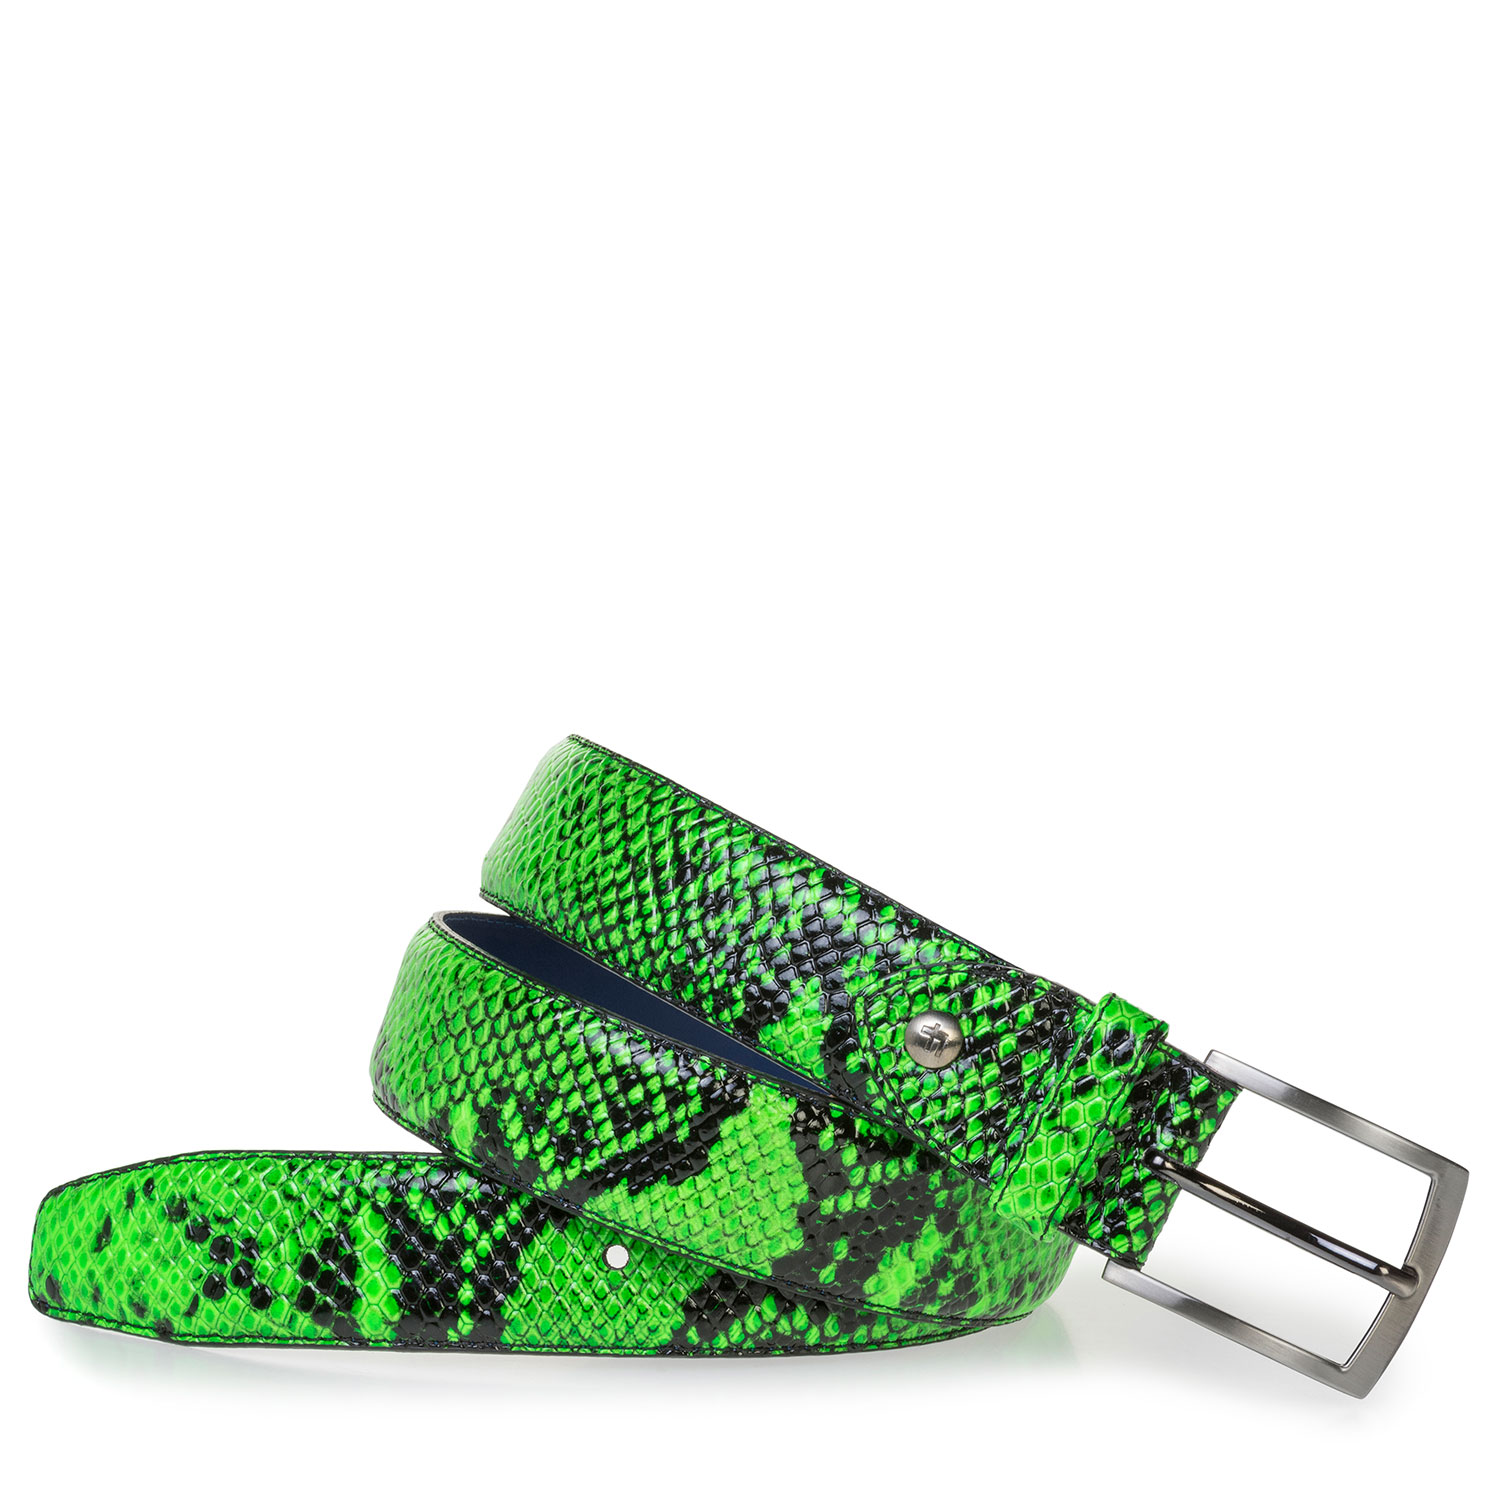 75201/60 - Premium fluorescent green belt with snake print